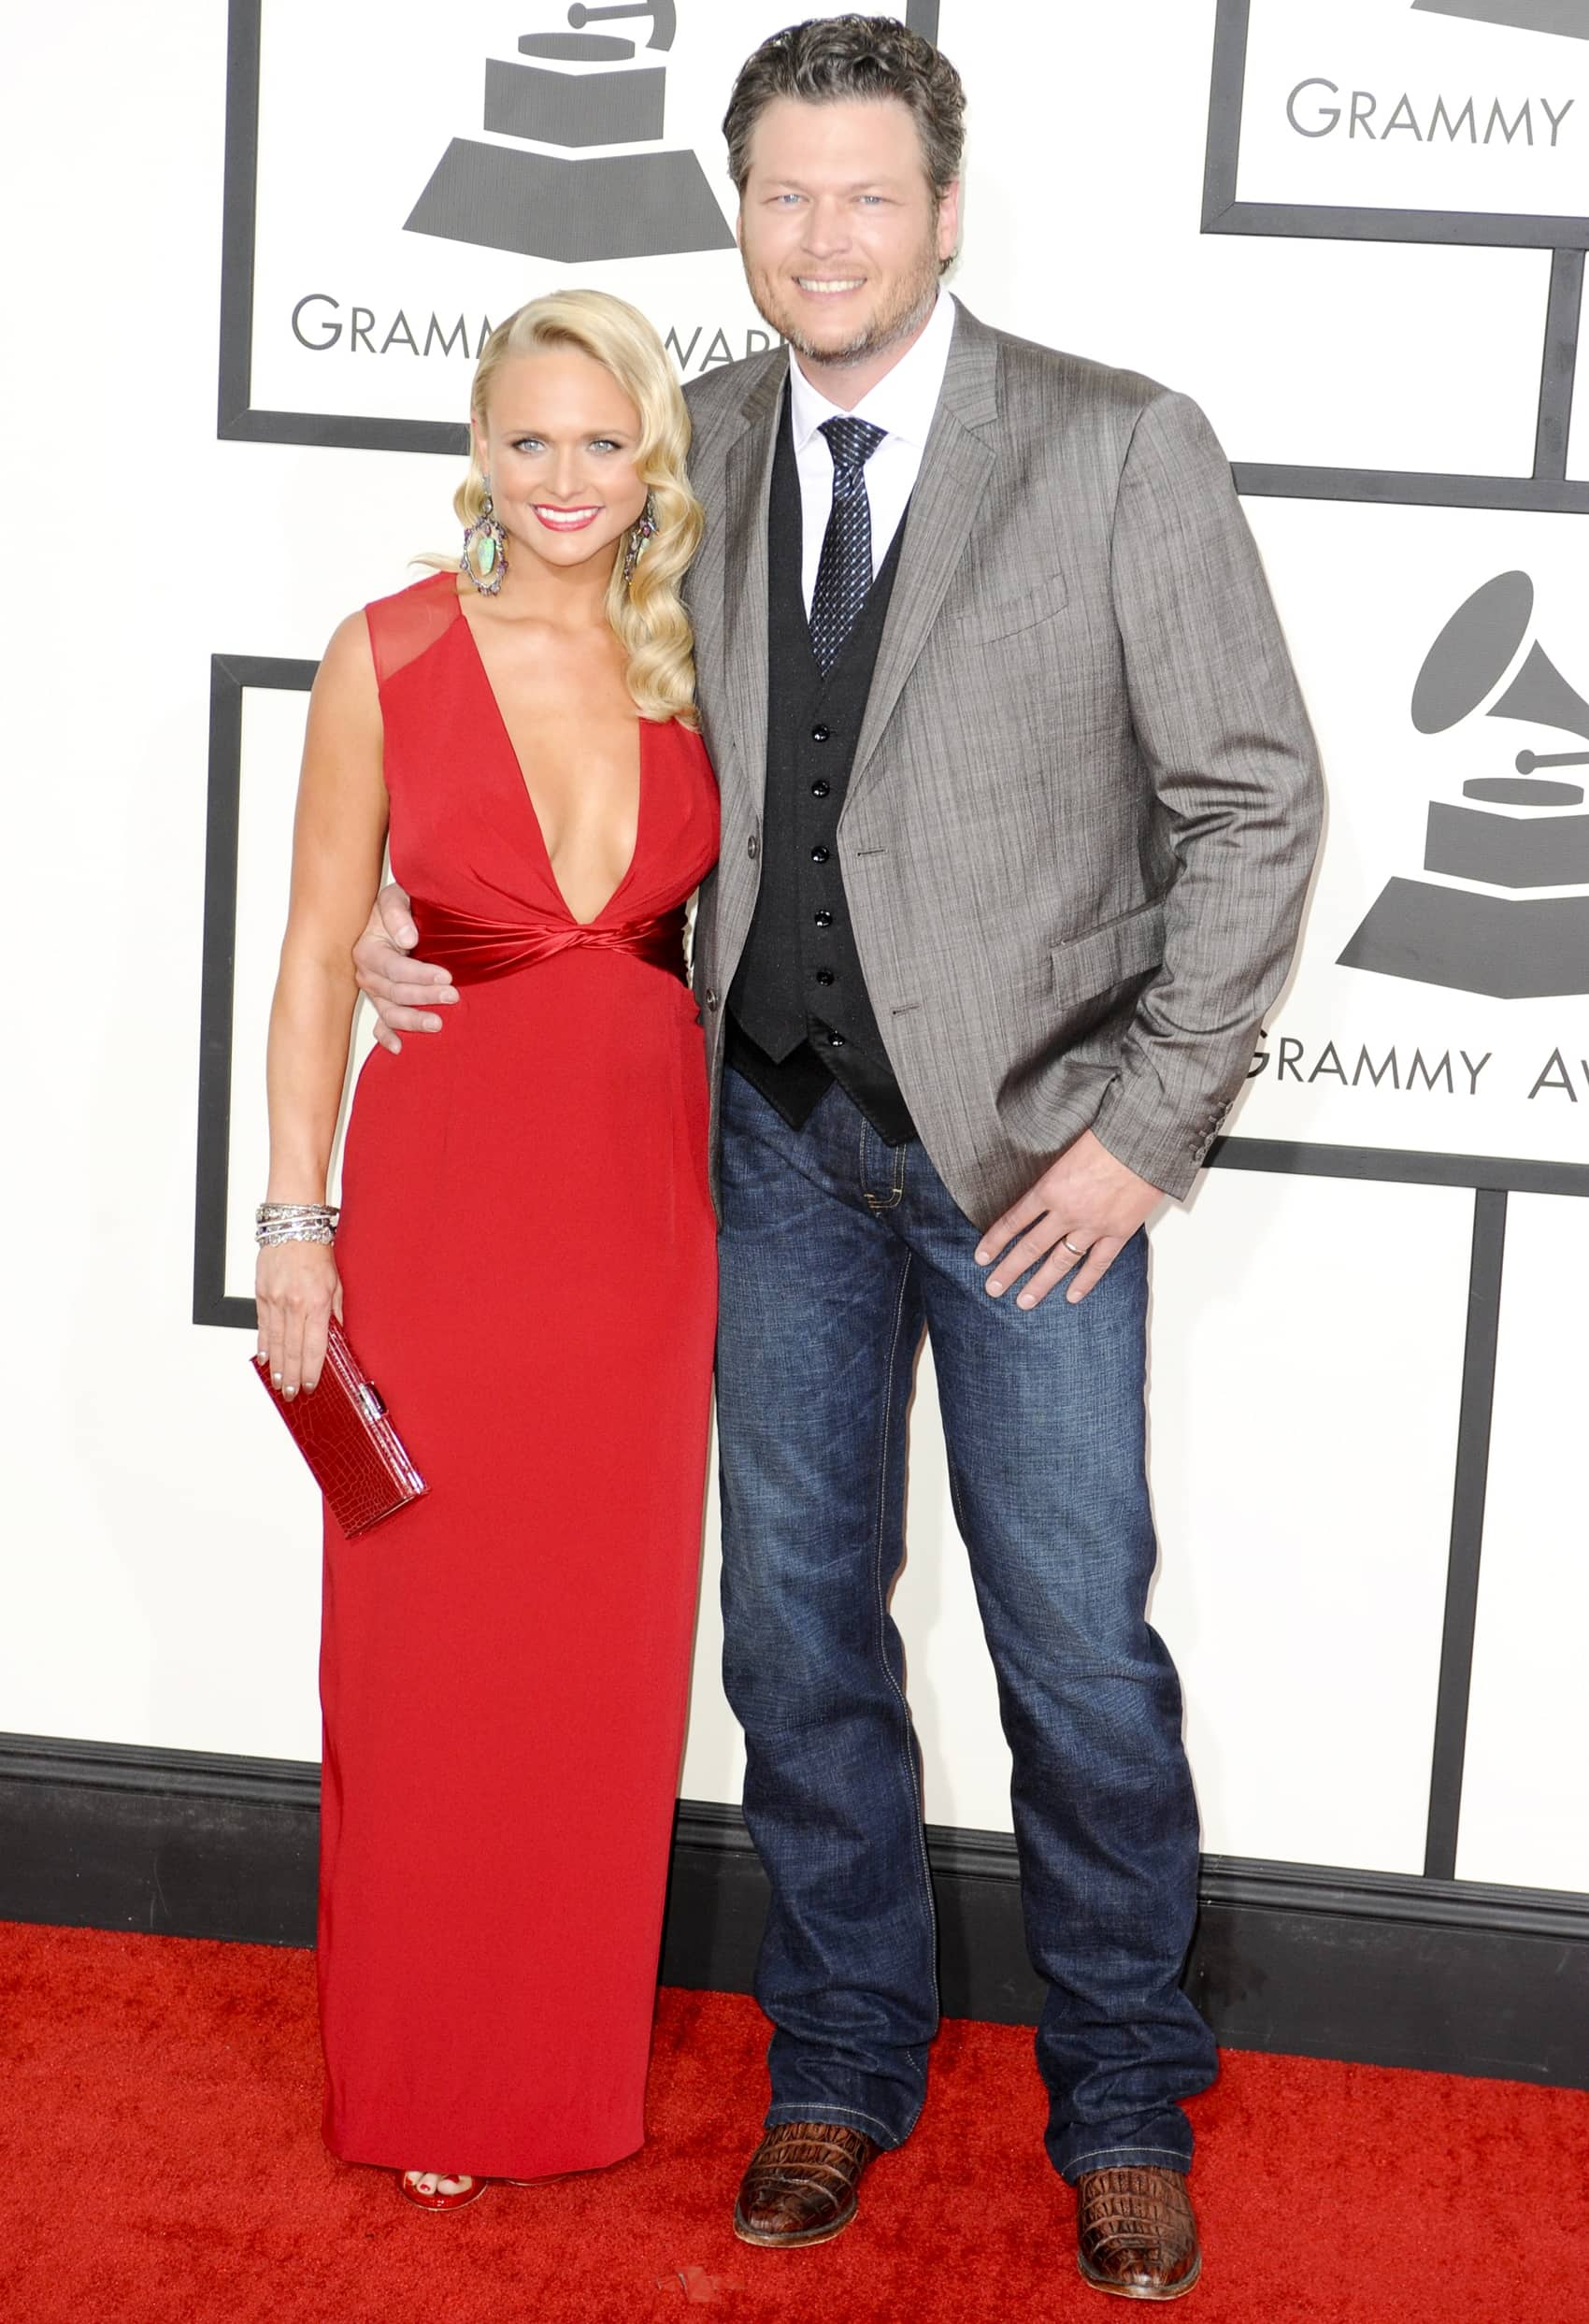 Blake Shelton reportedly couldn't convince his wife Miranda Lambert to move to Los Angeles from Oklahoma